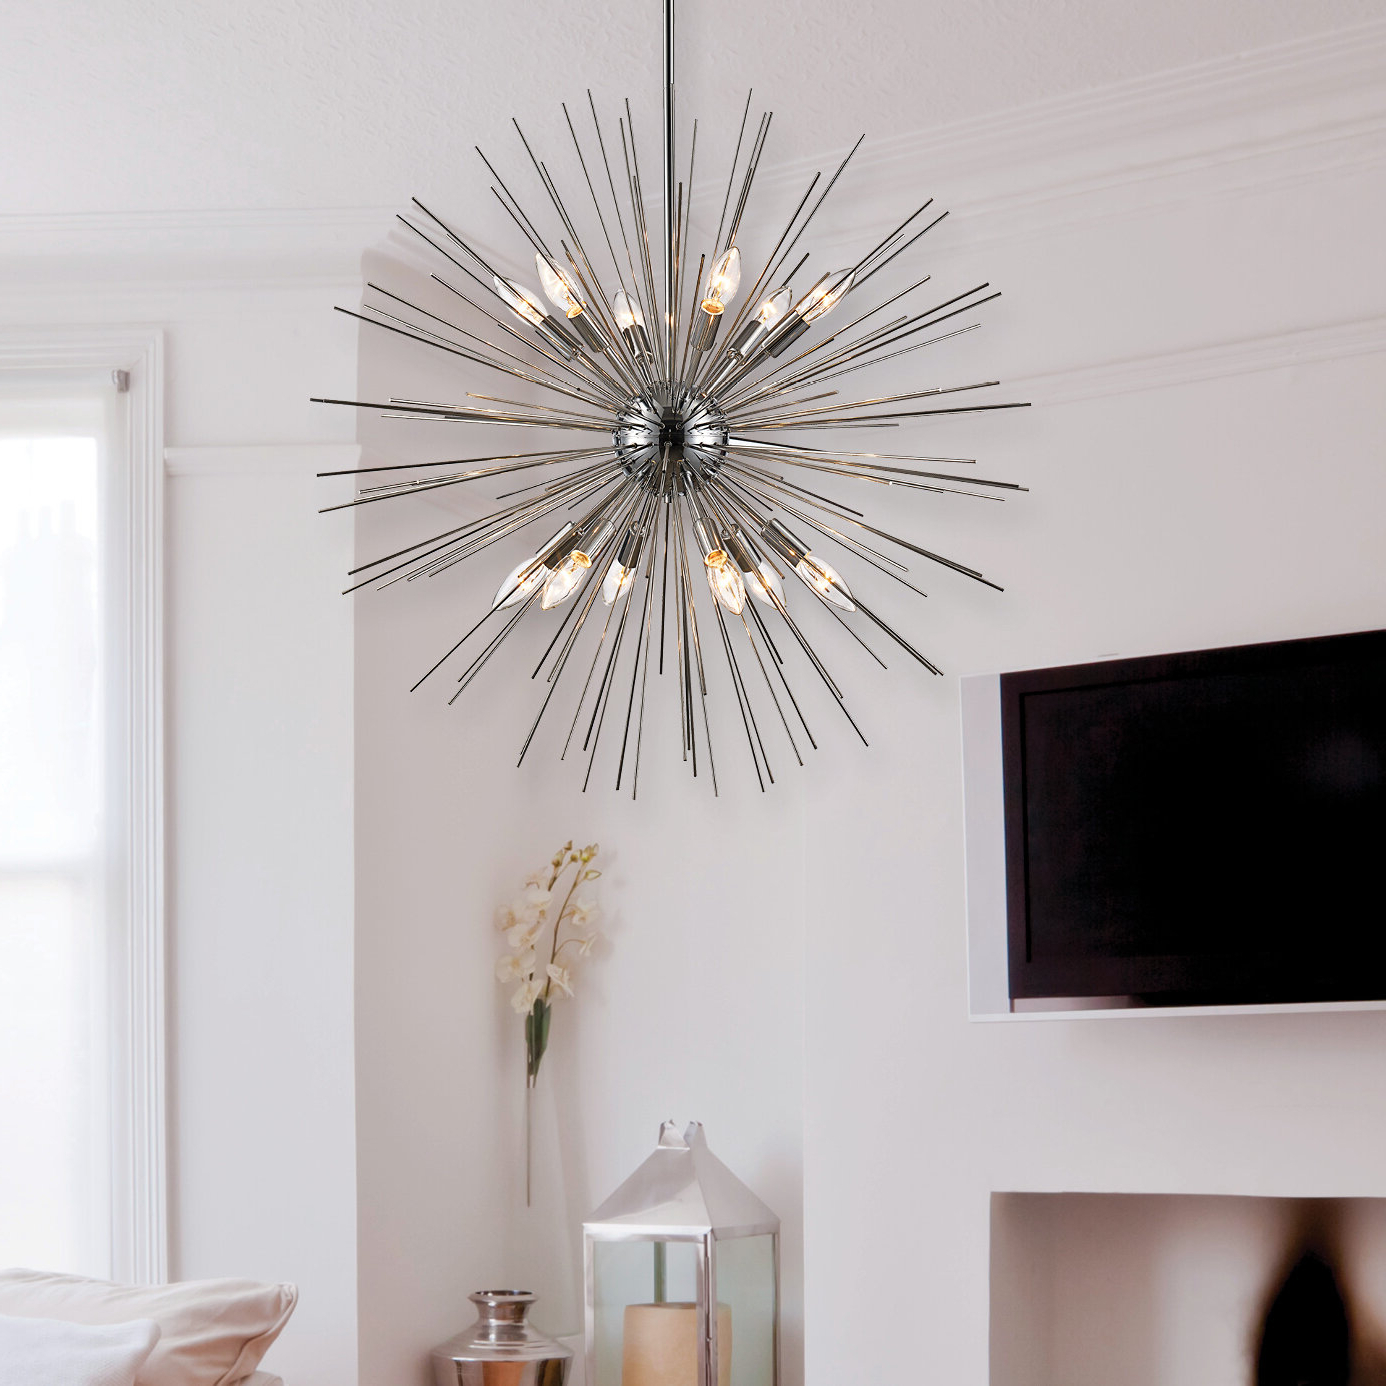 2019 Nelly 12 Light Sputnik Chandeliers Intended For Antonie 12 Light Sputnik Chandelier (View 2 of 25)